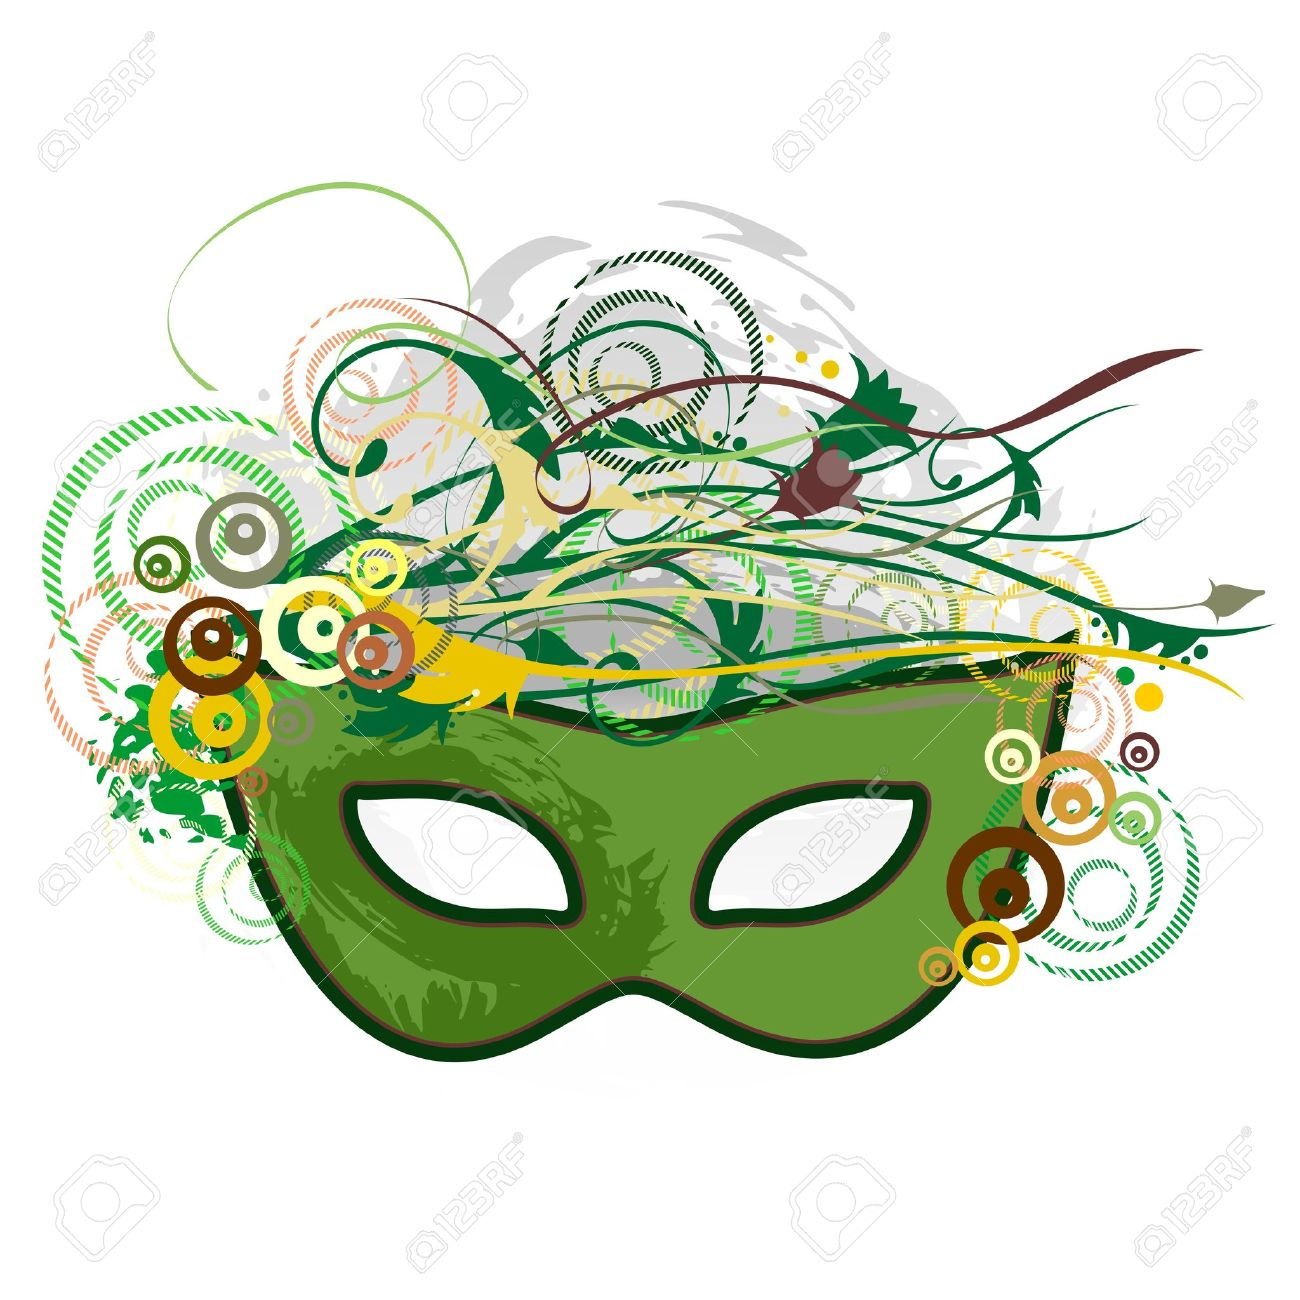 Carnival Purim Festival Mask Pop Art Abstract Nature Royalty Free.